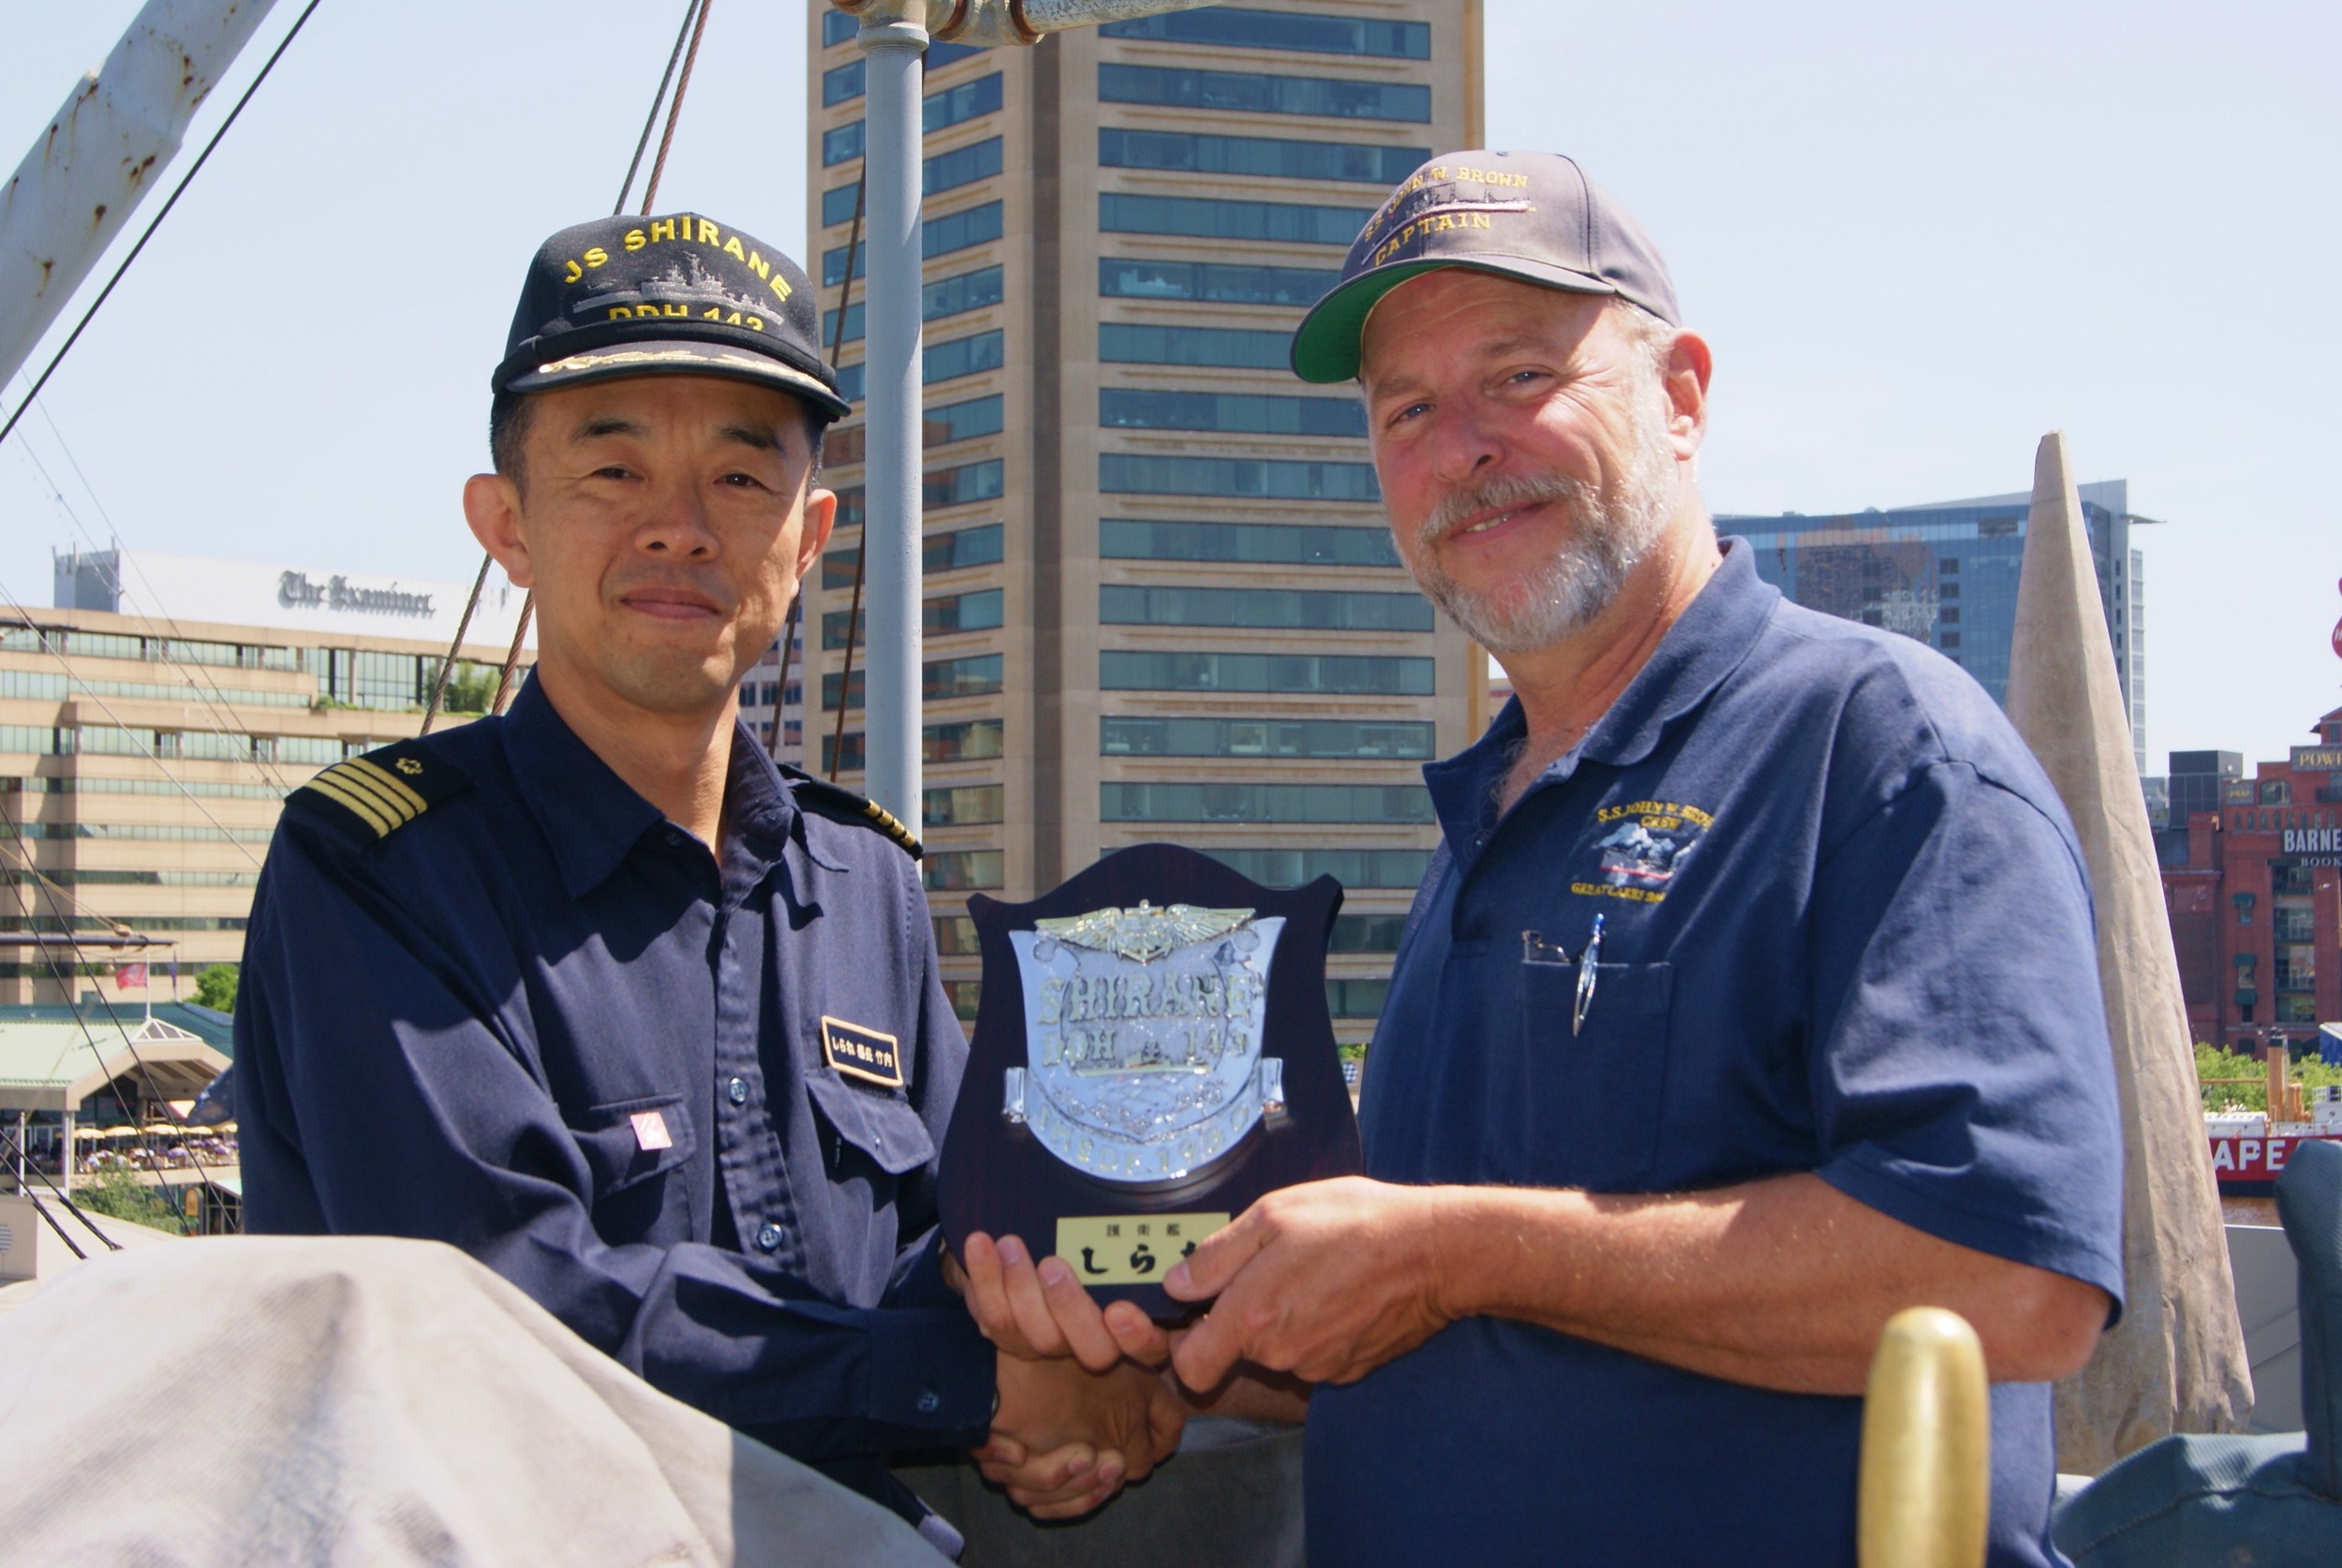 The Captain from the  JS SHIRANE  who along with his officers came for the short ride from Clinton Street to the Inner Harbor for the 2012 portion of Sailabration.  Below they are visiting the flying bridge.   JDS SHIRANE (DDG-143)   is a   destroyer   in the  Japan Maritime Self-Defense Force.